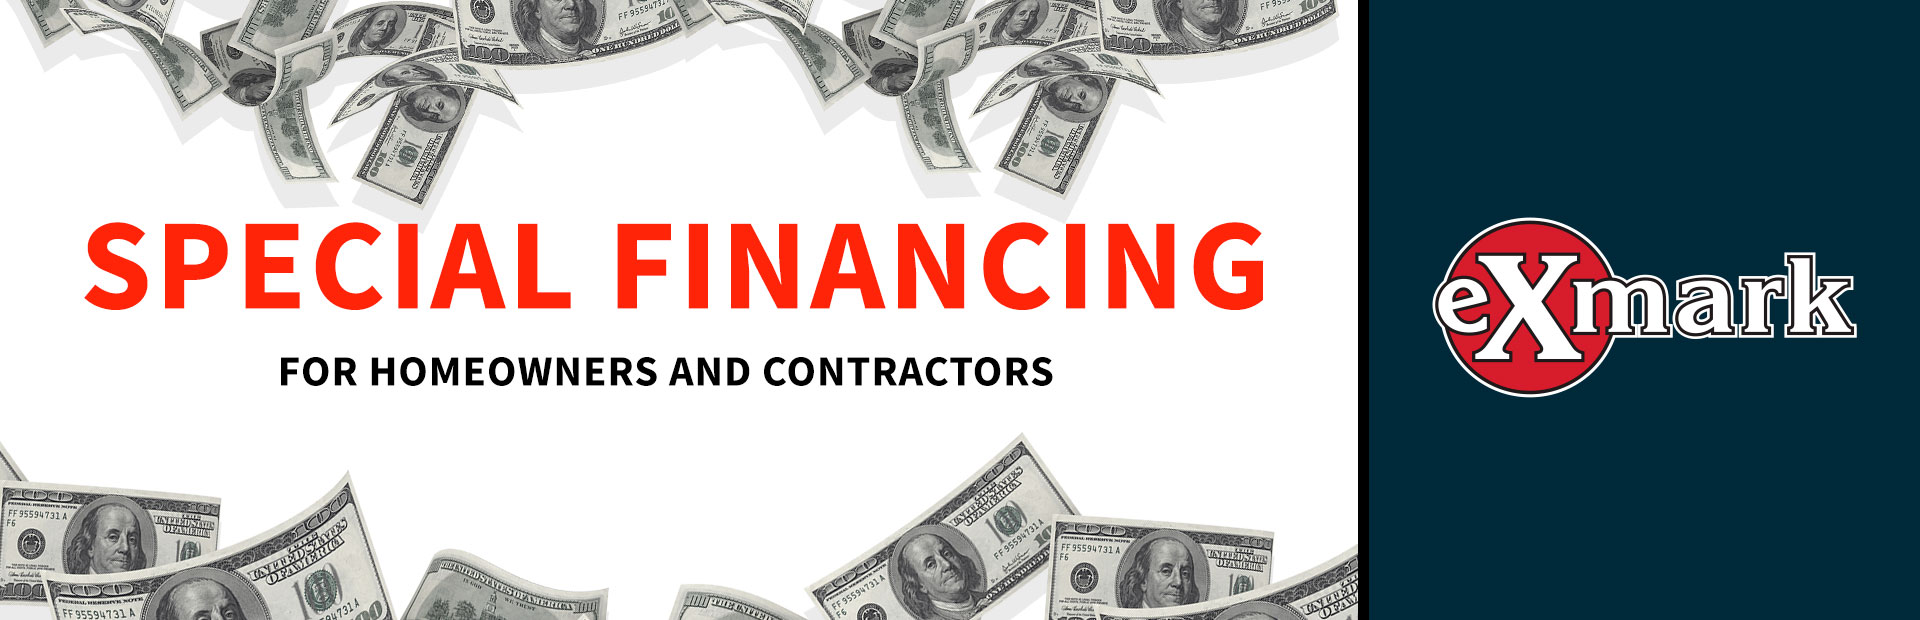 Exmark: Special Financing for Homeowners and Contractors